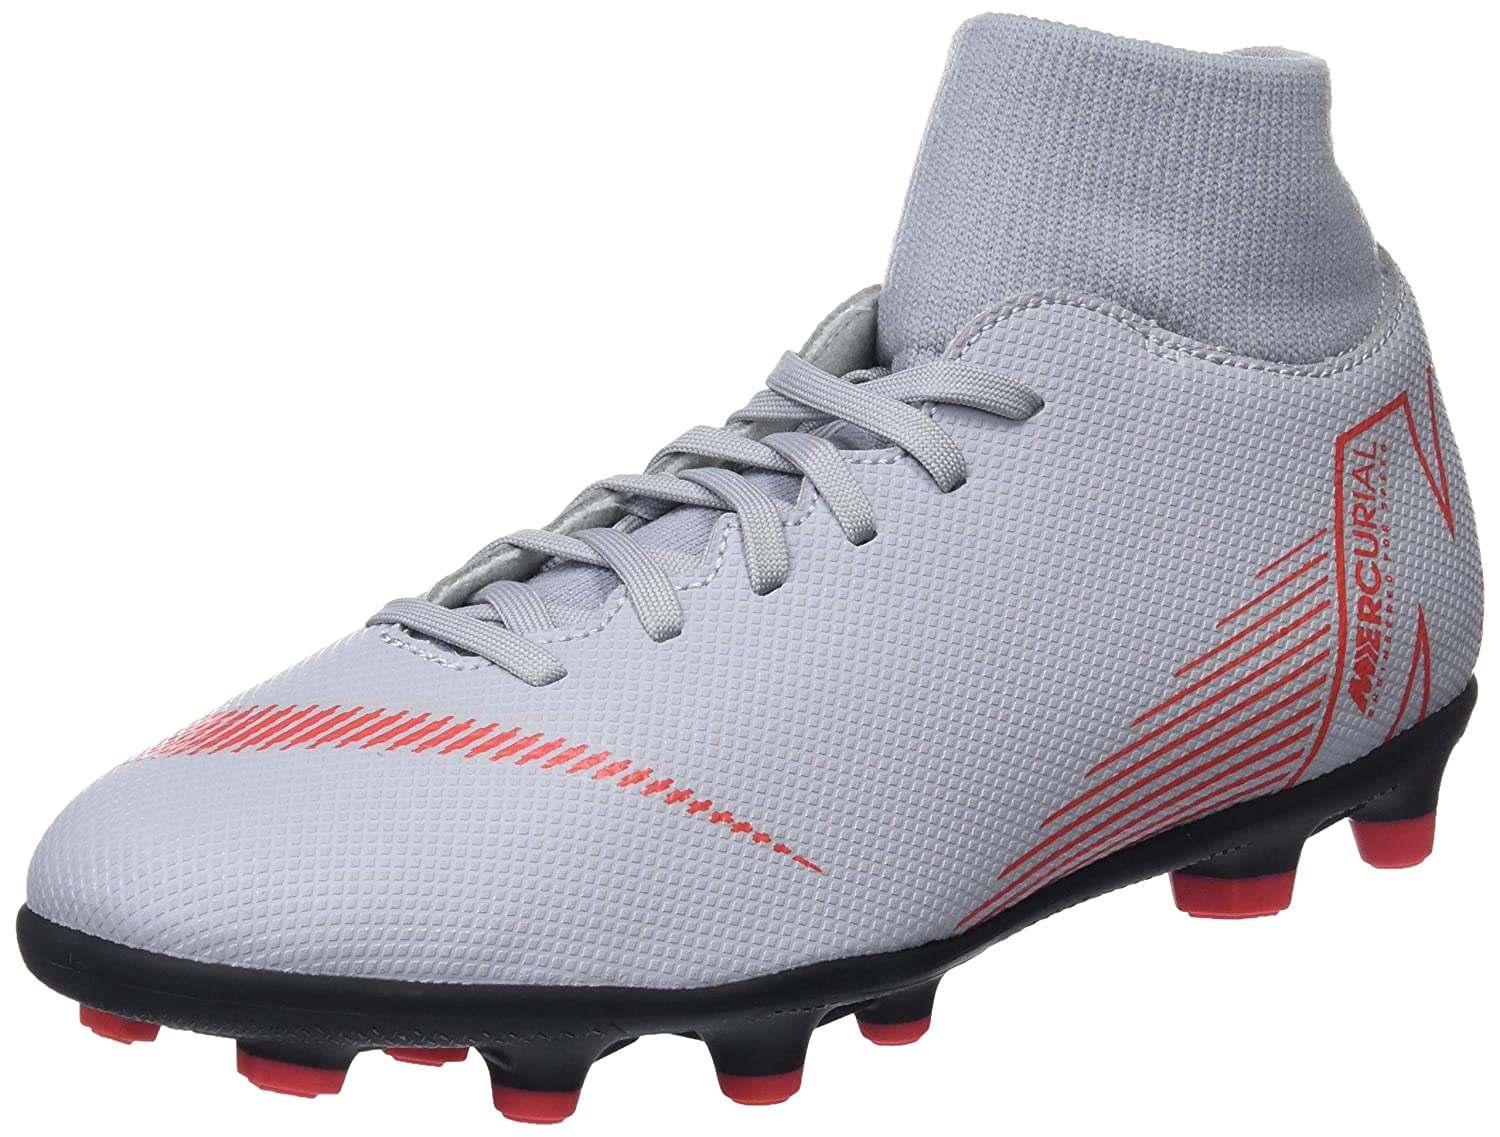 c3eca57fa2ae Nike Superfly 6 Club Fg/Mg Mens Football Boots Ah7363 Soccer Cleats (UK 7.5  US 8.5 EU 42, Wolf Grey Light Crimson Black 060): Buy Online at Low Prices  in ...